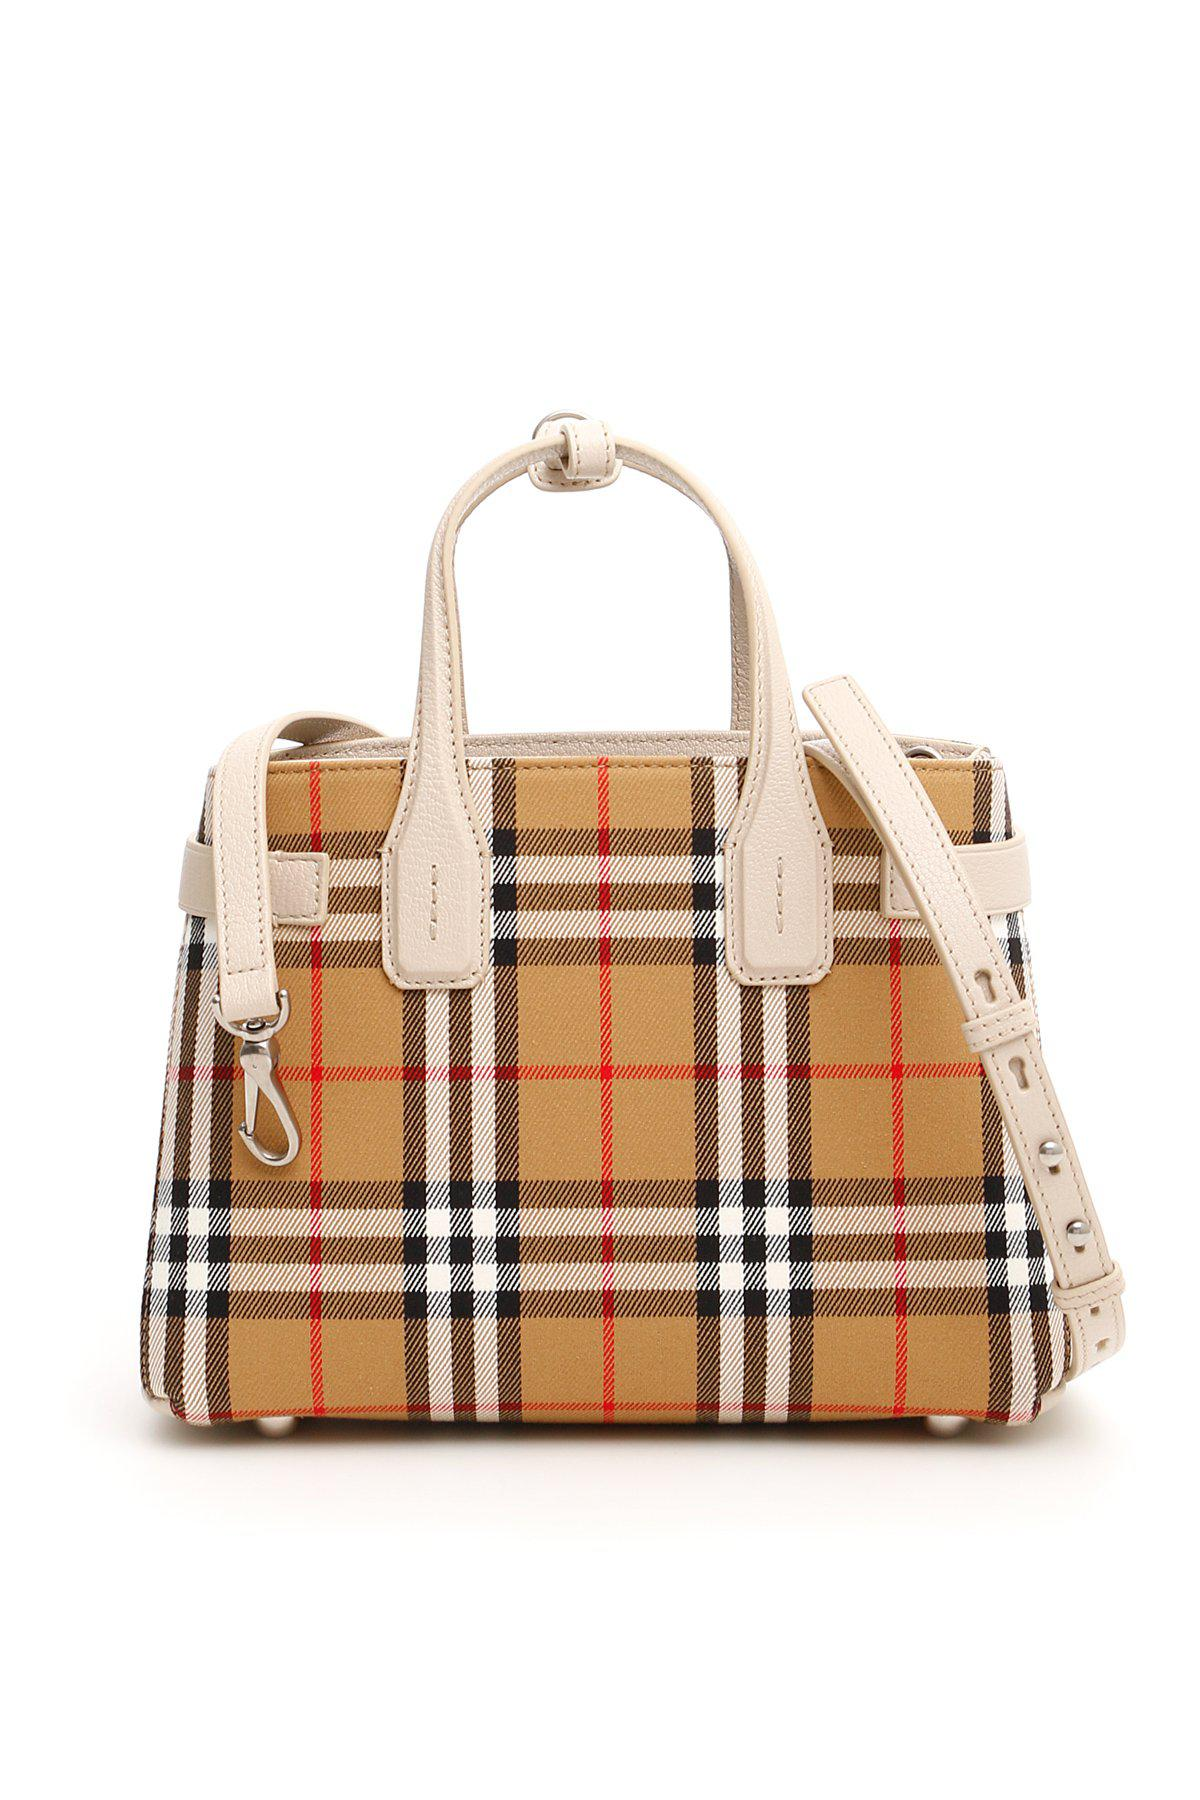 Burberry The Banner Vintage Check Bag in Brown - Lyst e0efbfca01c44